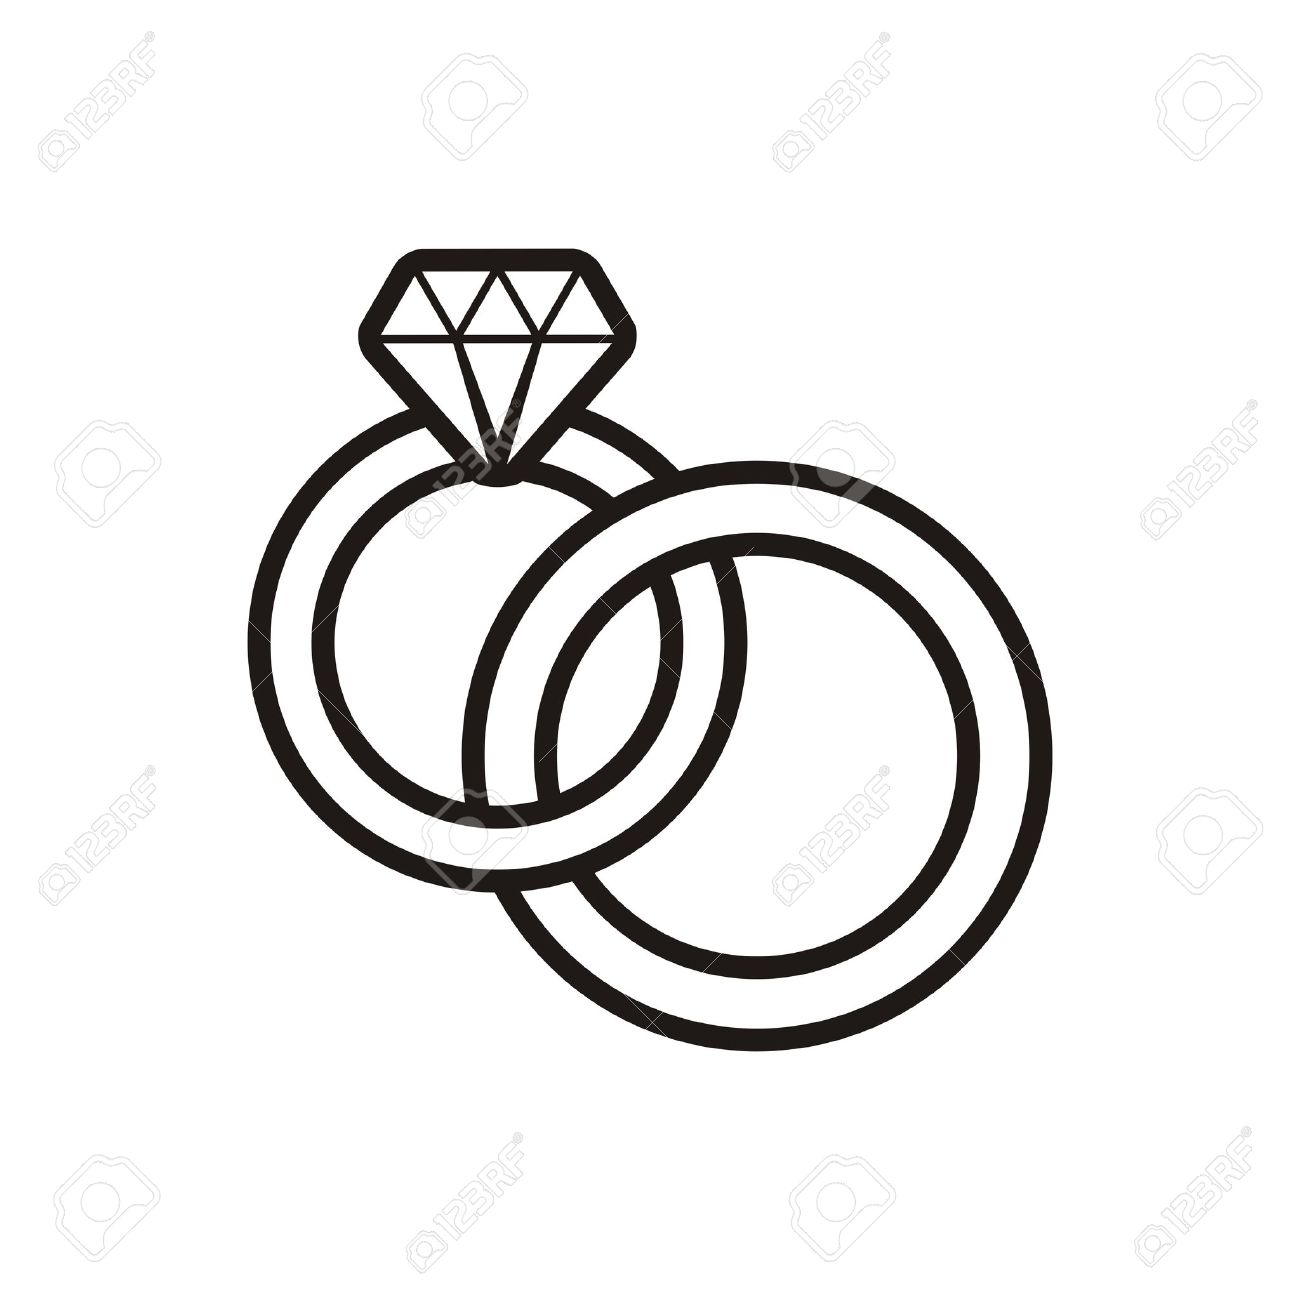 Black Vector Wedding Rings Outline Icon On White Royalty Free